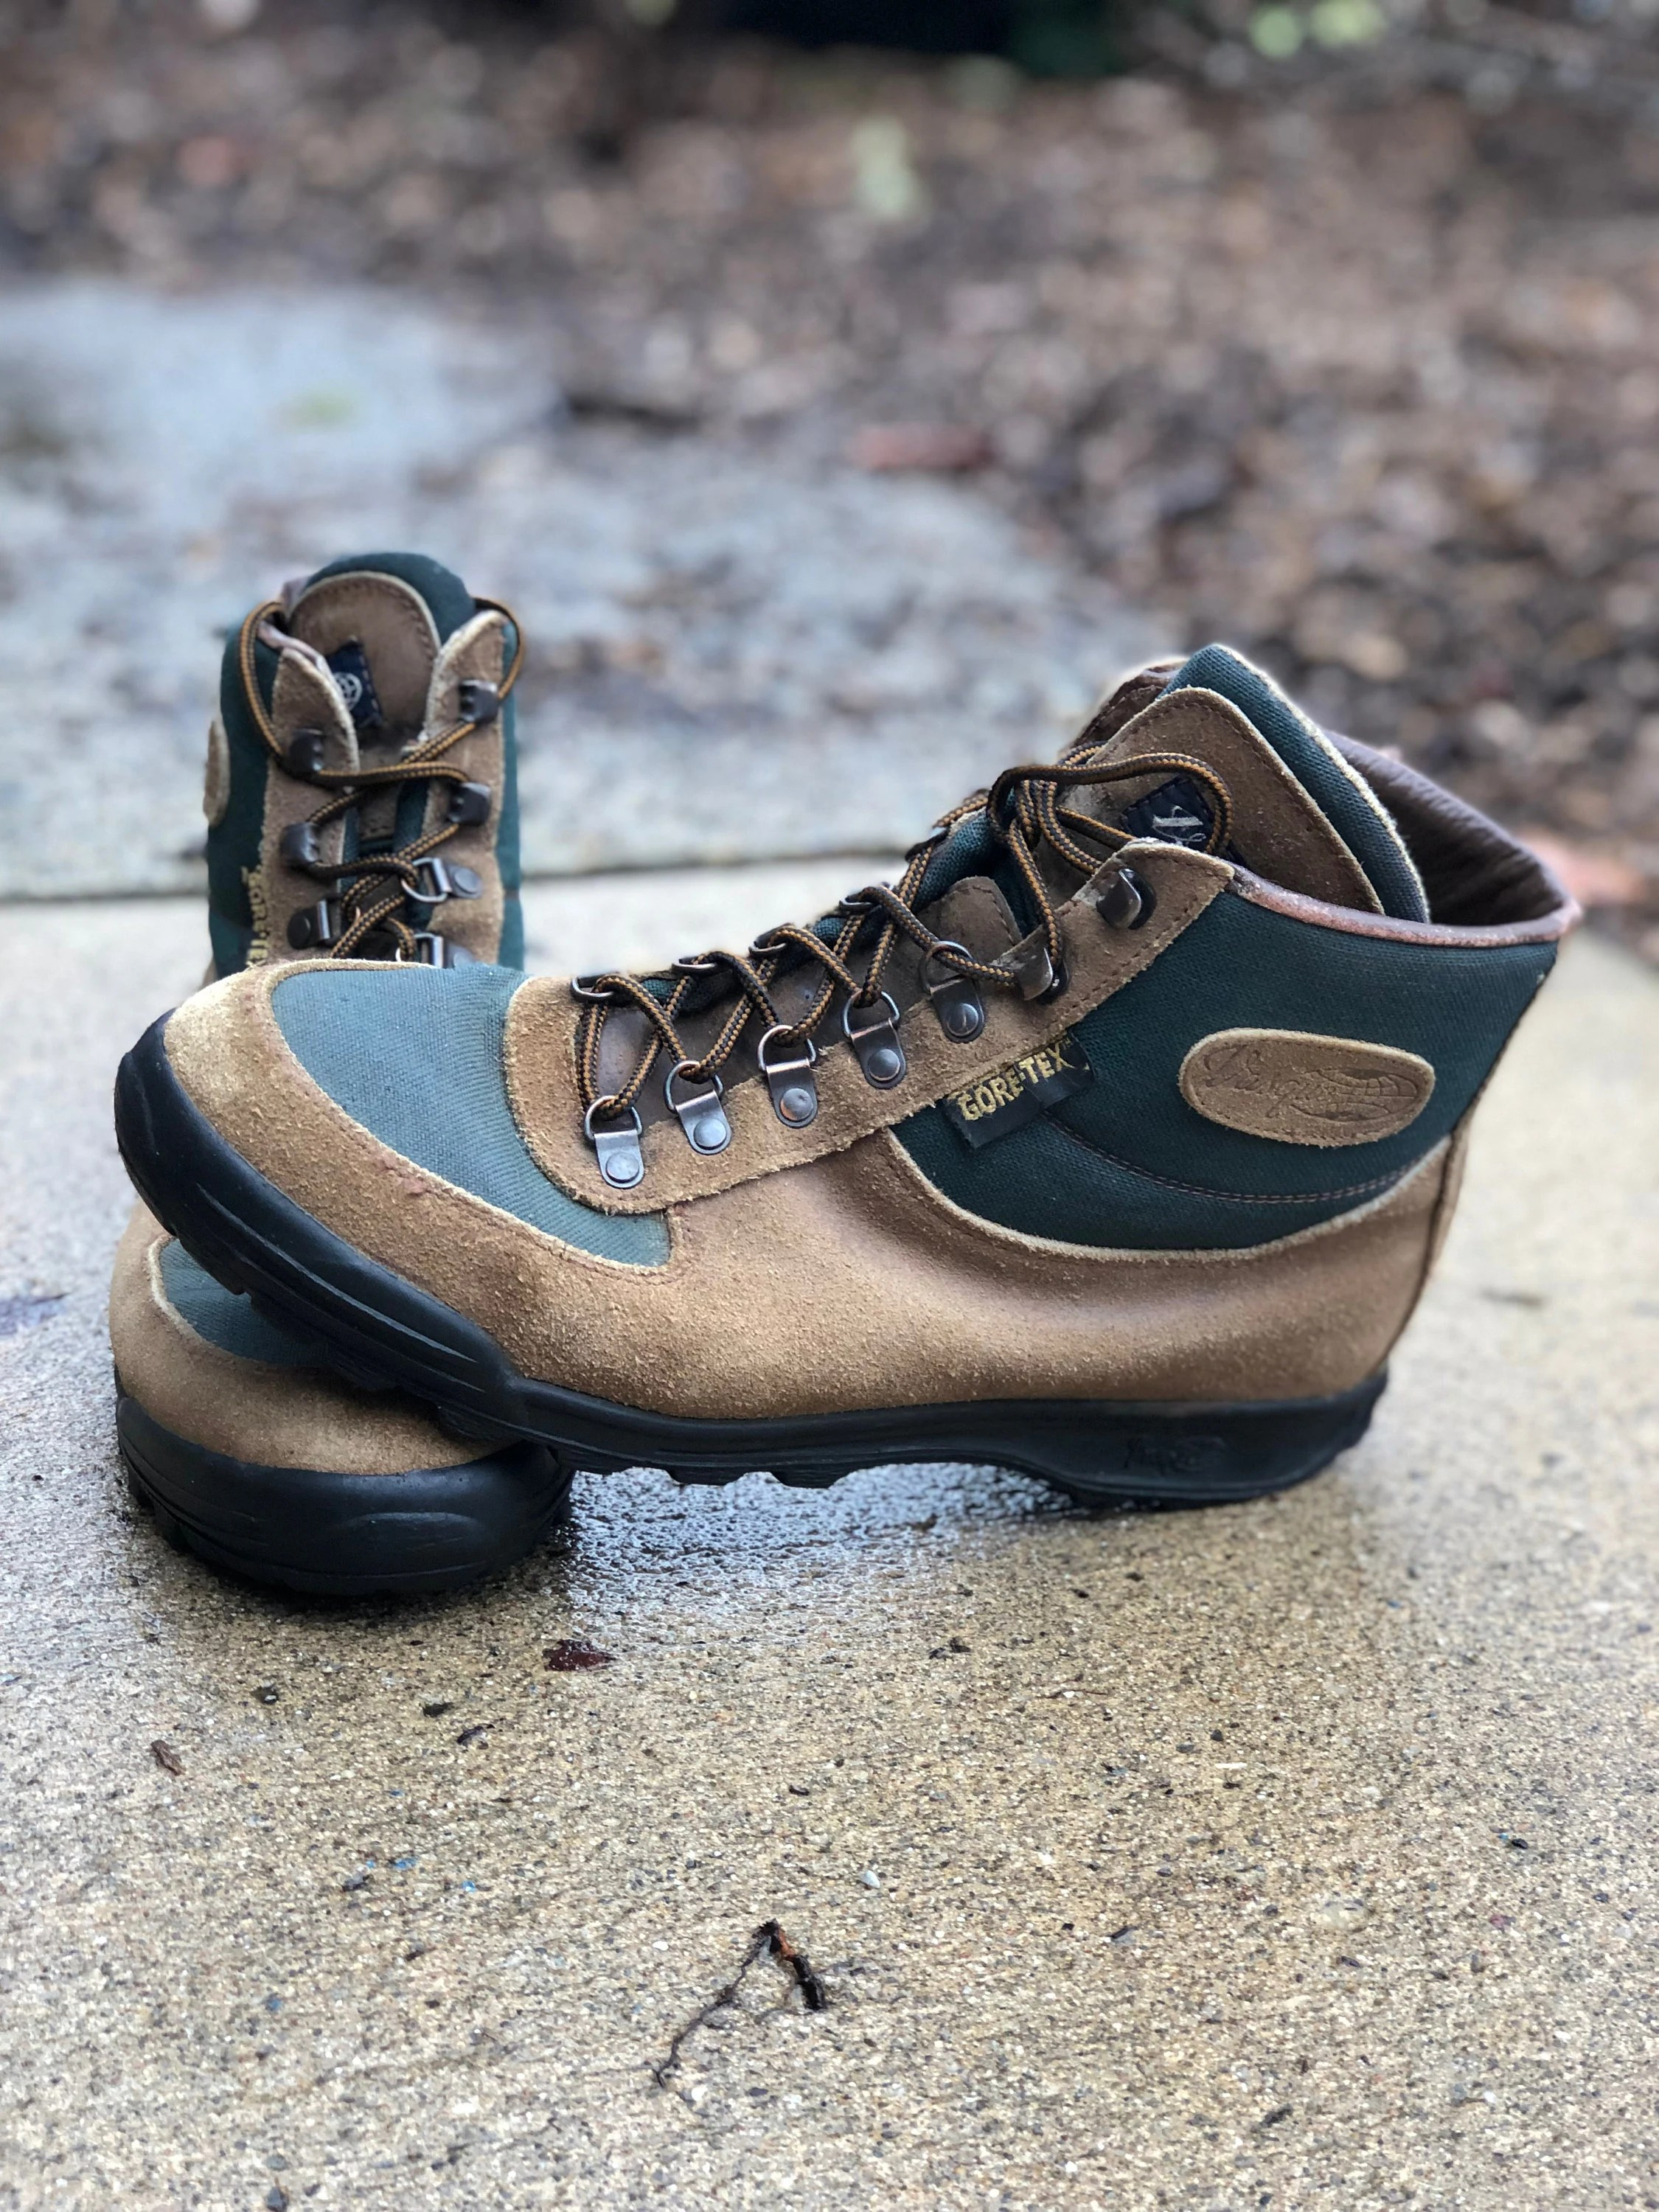 Vasque Retro Boots Vintage Vasque Sundowner Skywalk Gore Tex Hiking Boots Made In Italy In 1992 Size 10 1 2 Mens May Fit Trans Other Genders